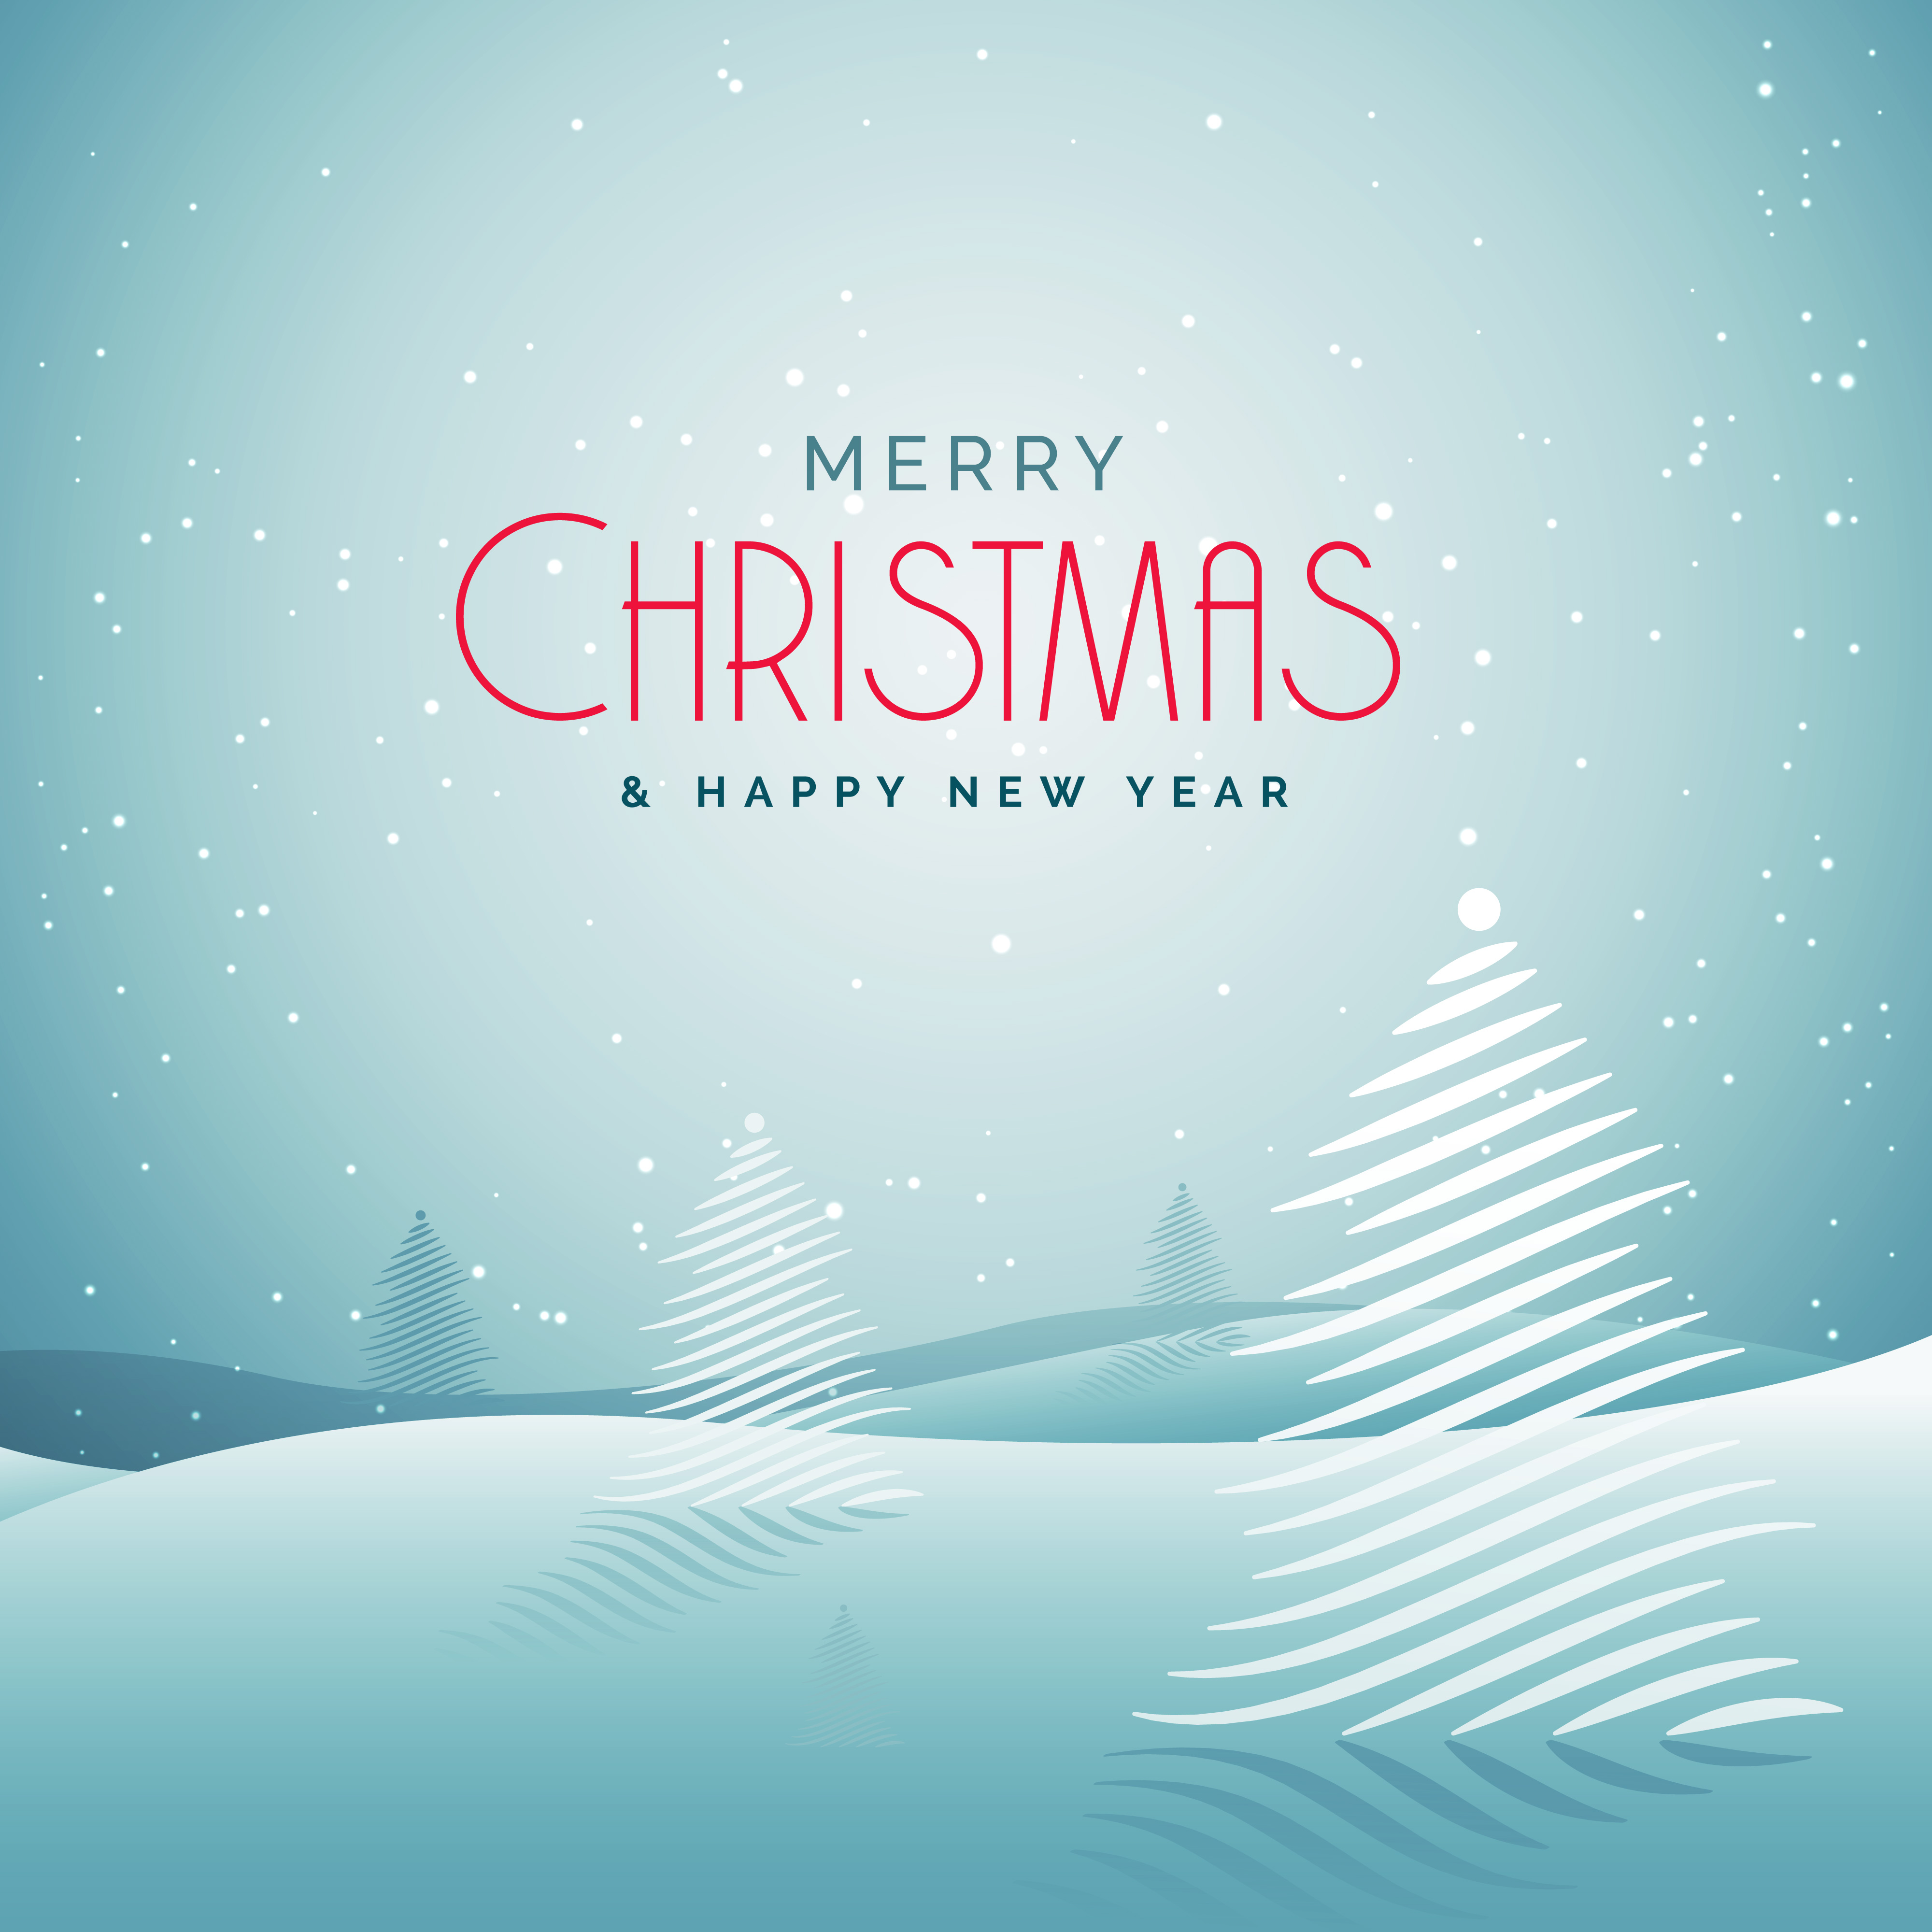 Elegant Christmas Greeting Card With Snow And Creative